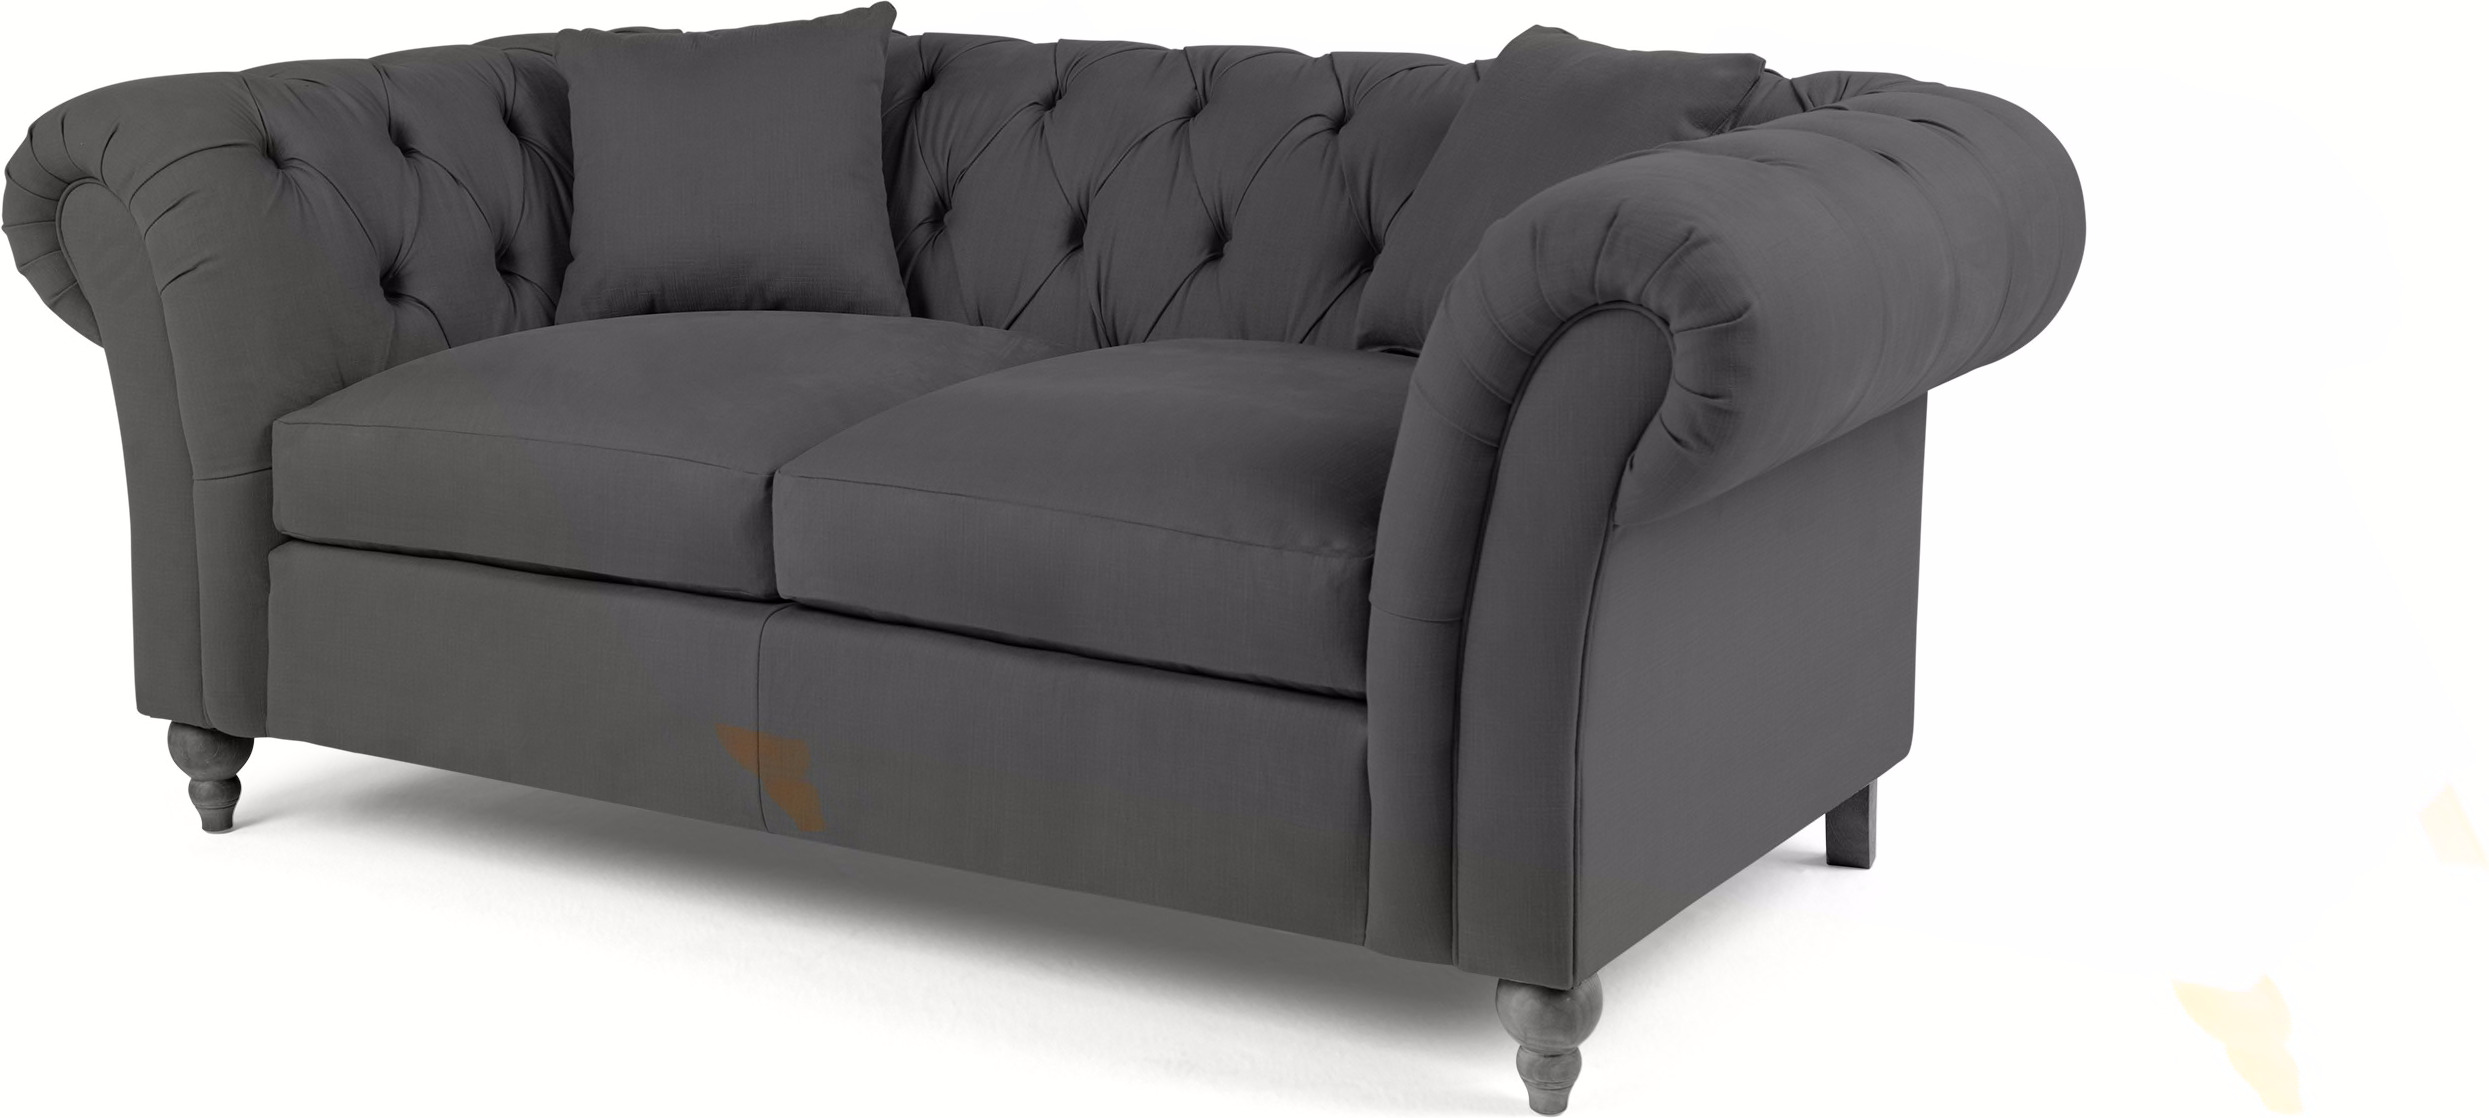 best deals on sofa beds uk